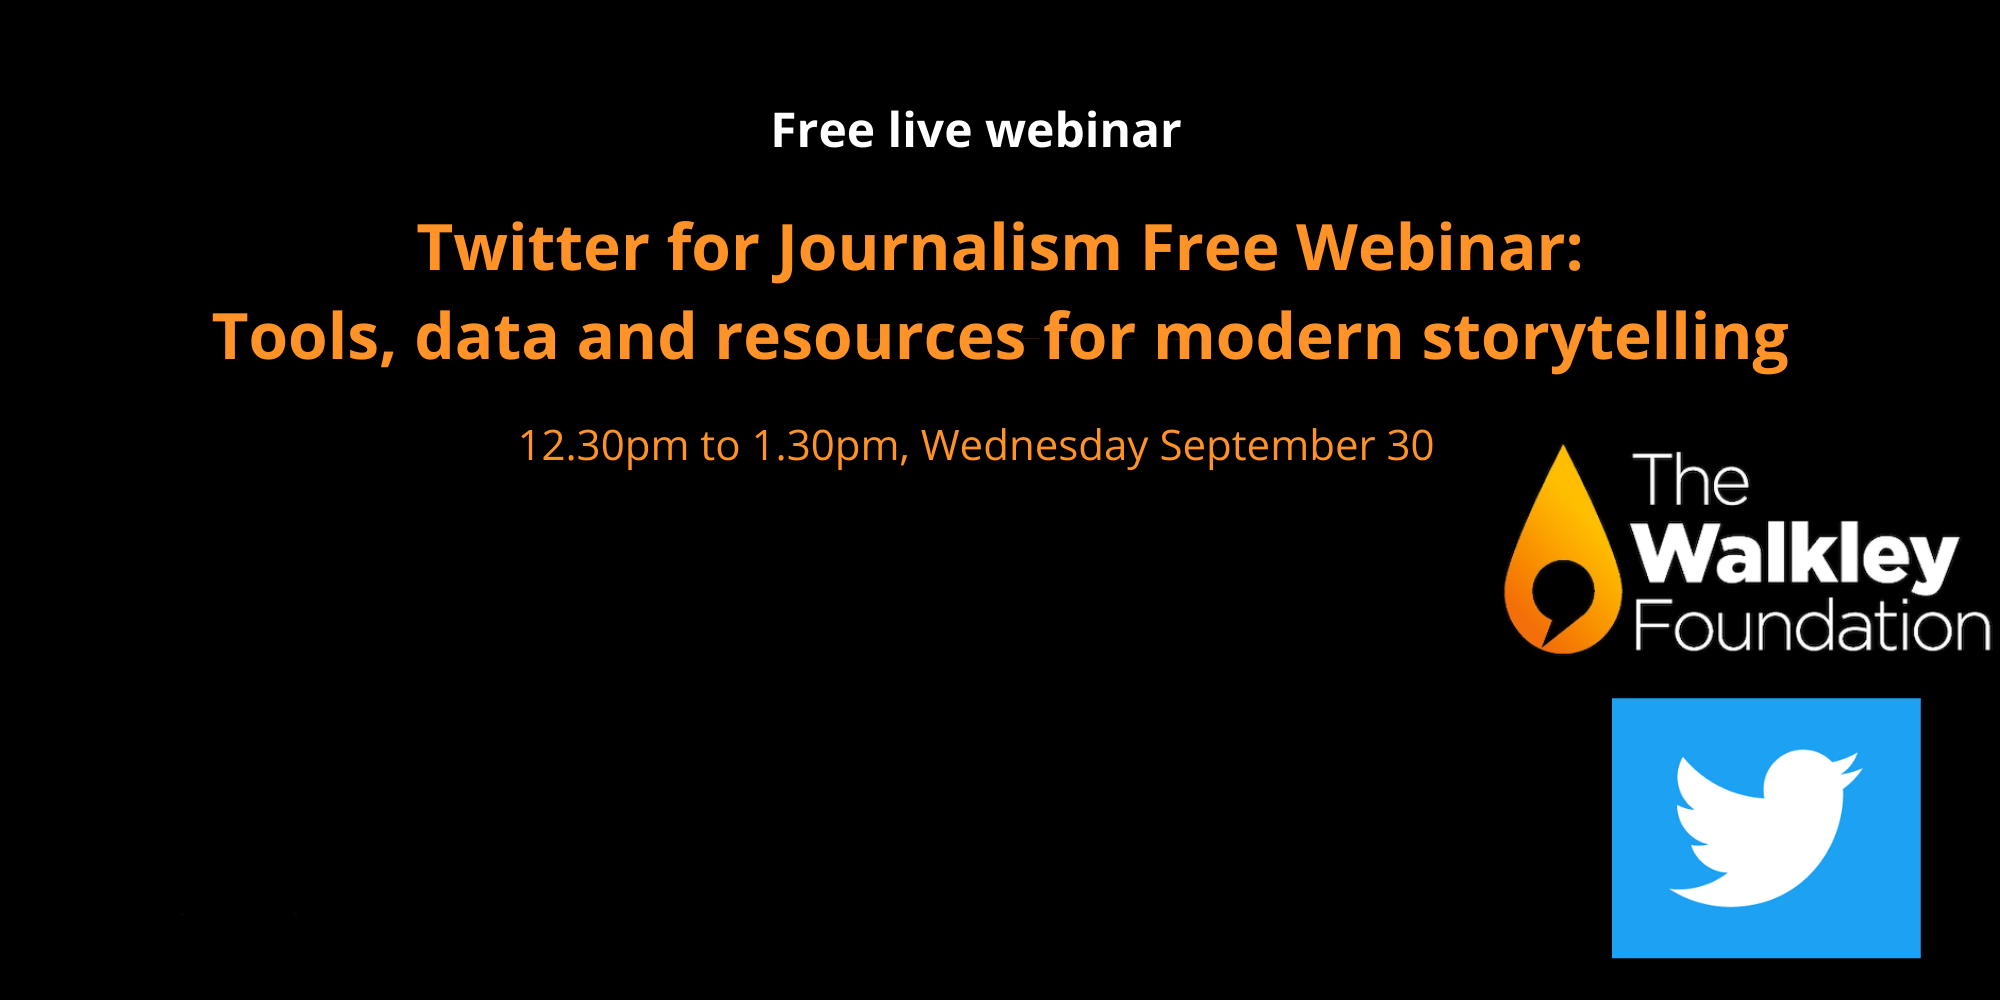 Twitter for Journalism free webinar: Tools, data and resources for modern storytelling